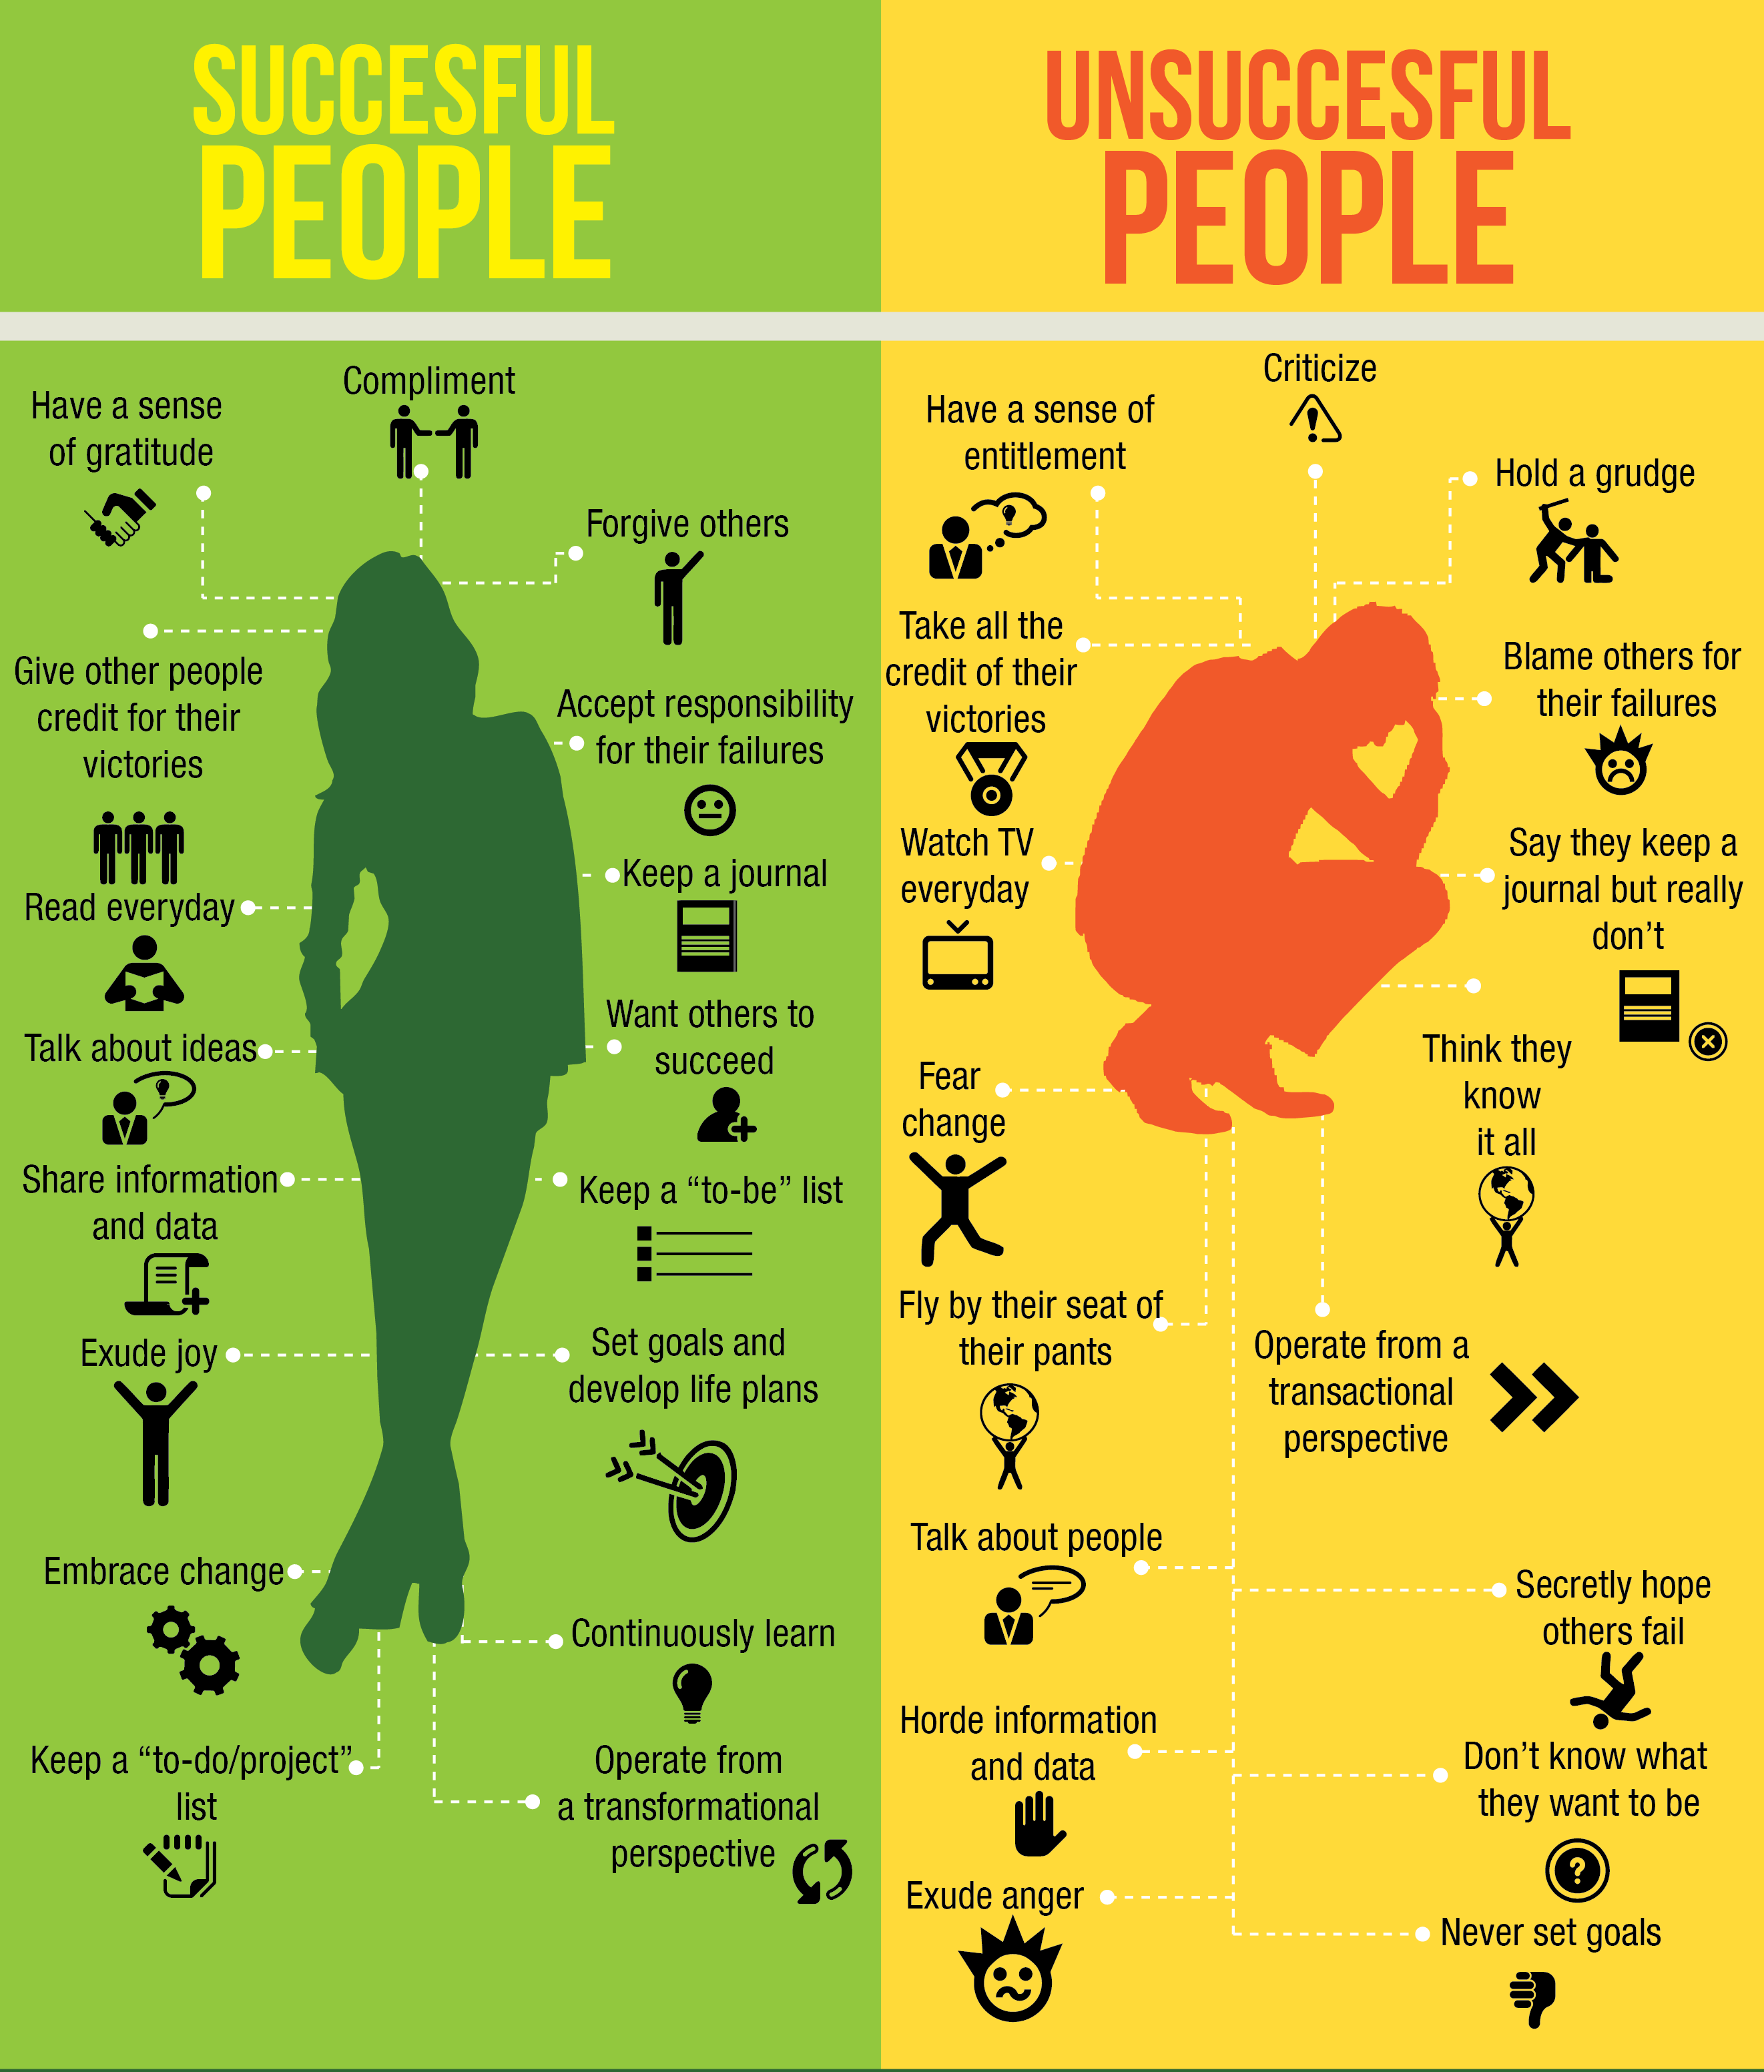 What Successful People Do and What Unsuccessful People Do